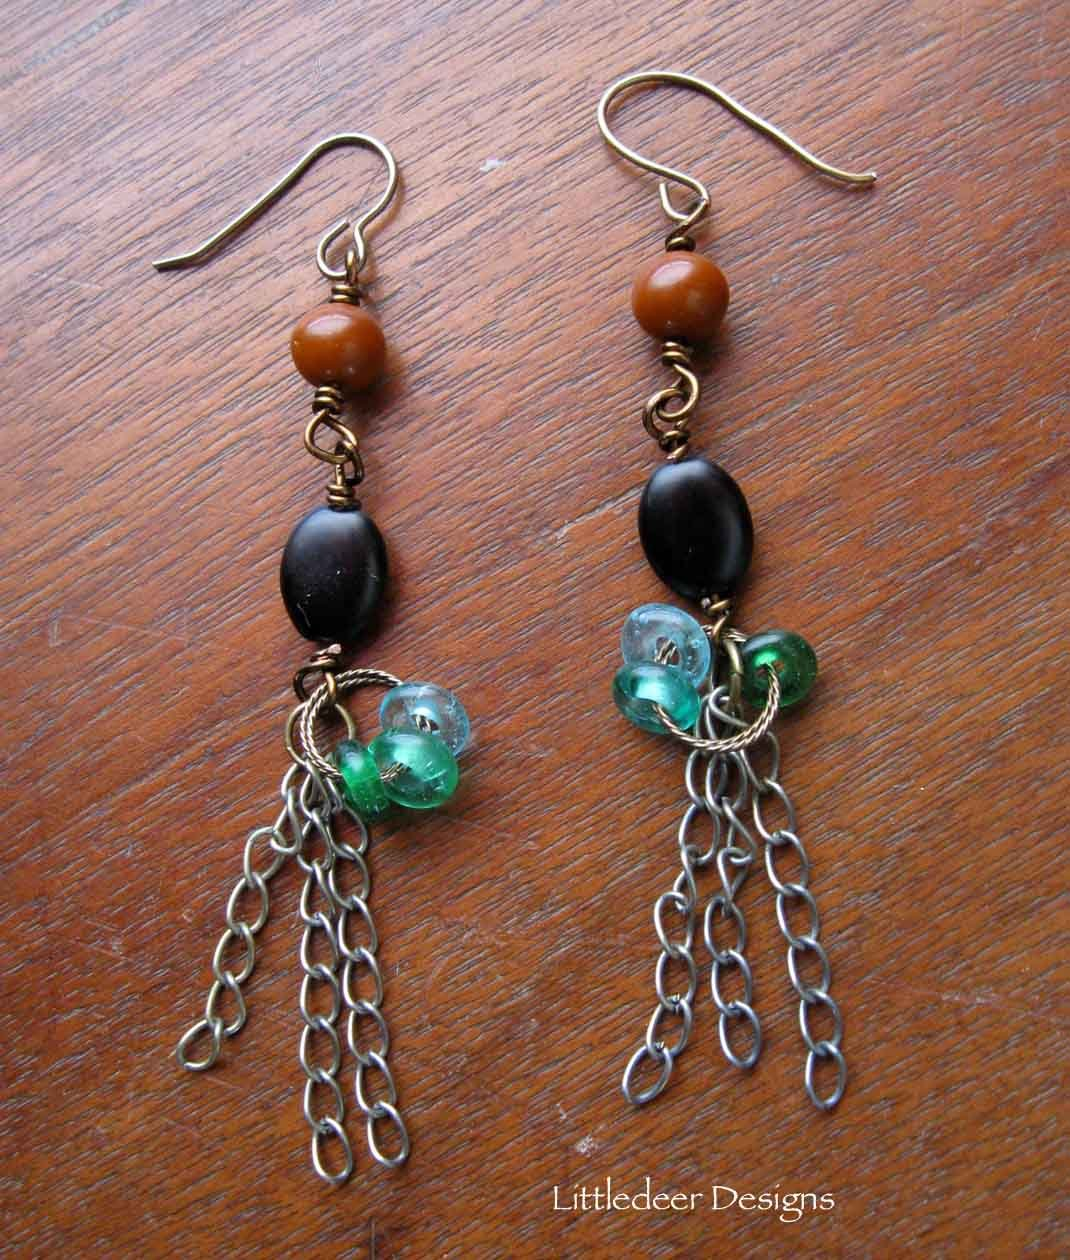 Handmade rust, black, and green with brass chain earrings